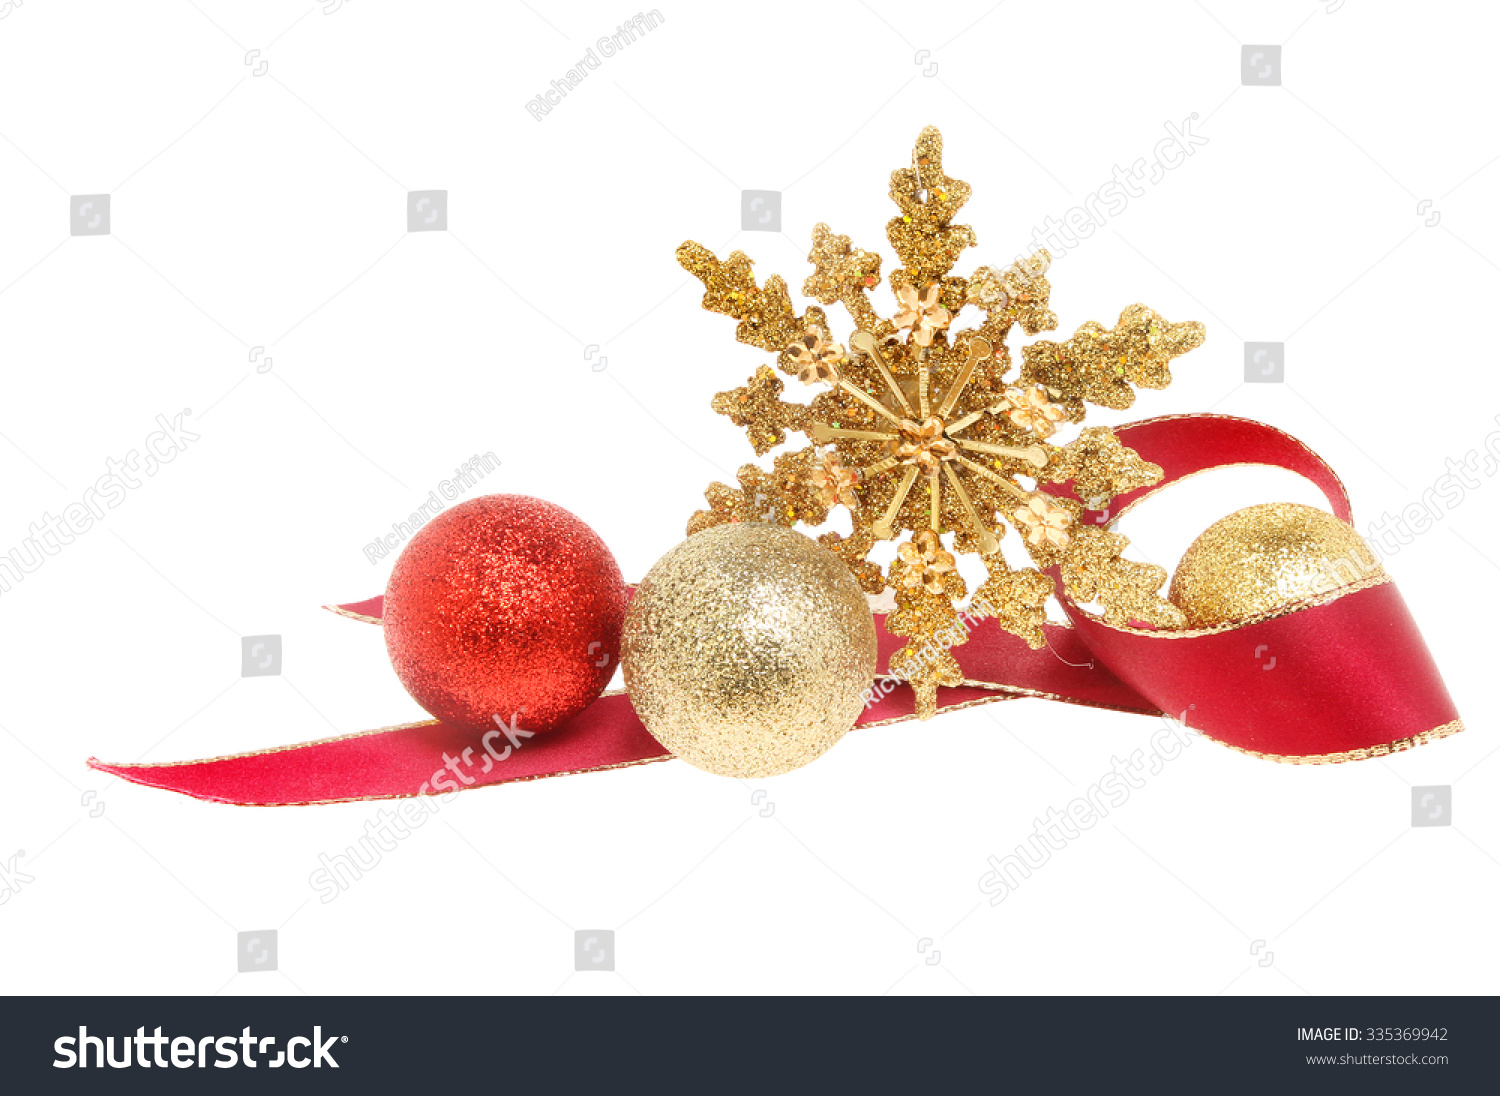 91bc07a1c0fb Gold Red Green Christmas Baubles Isolated. Christmas Decoration A Gold  Glitter Star With Red Ribbon